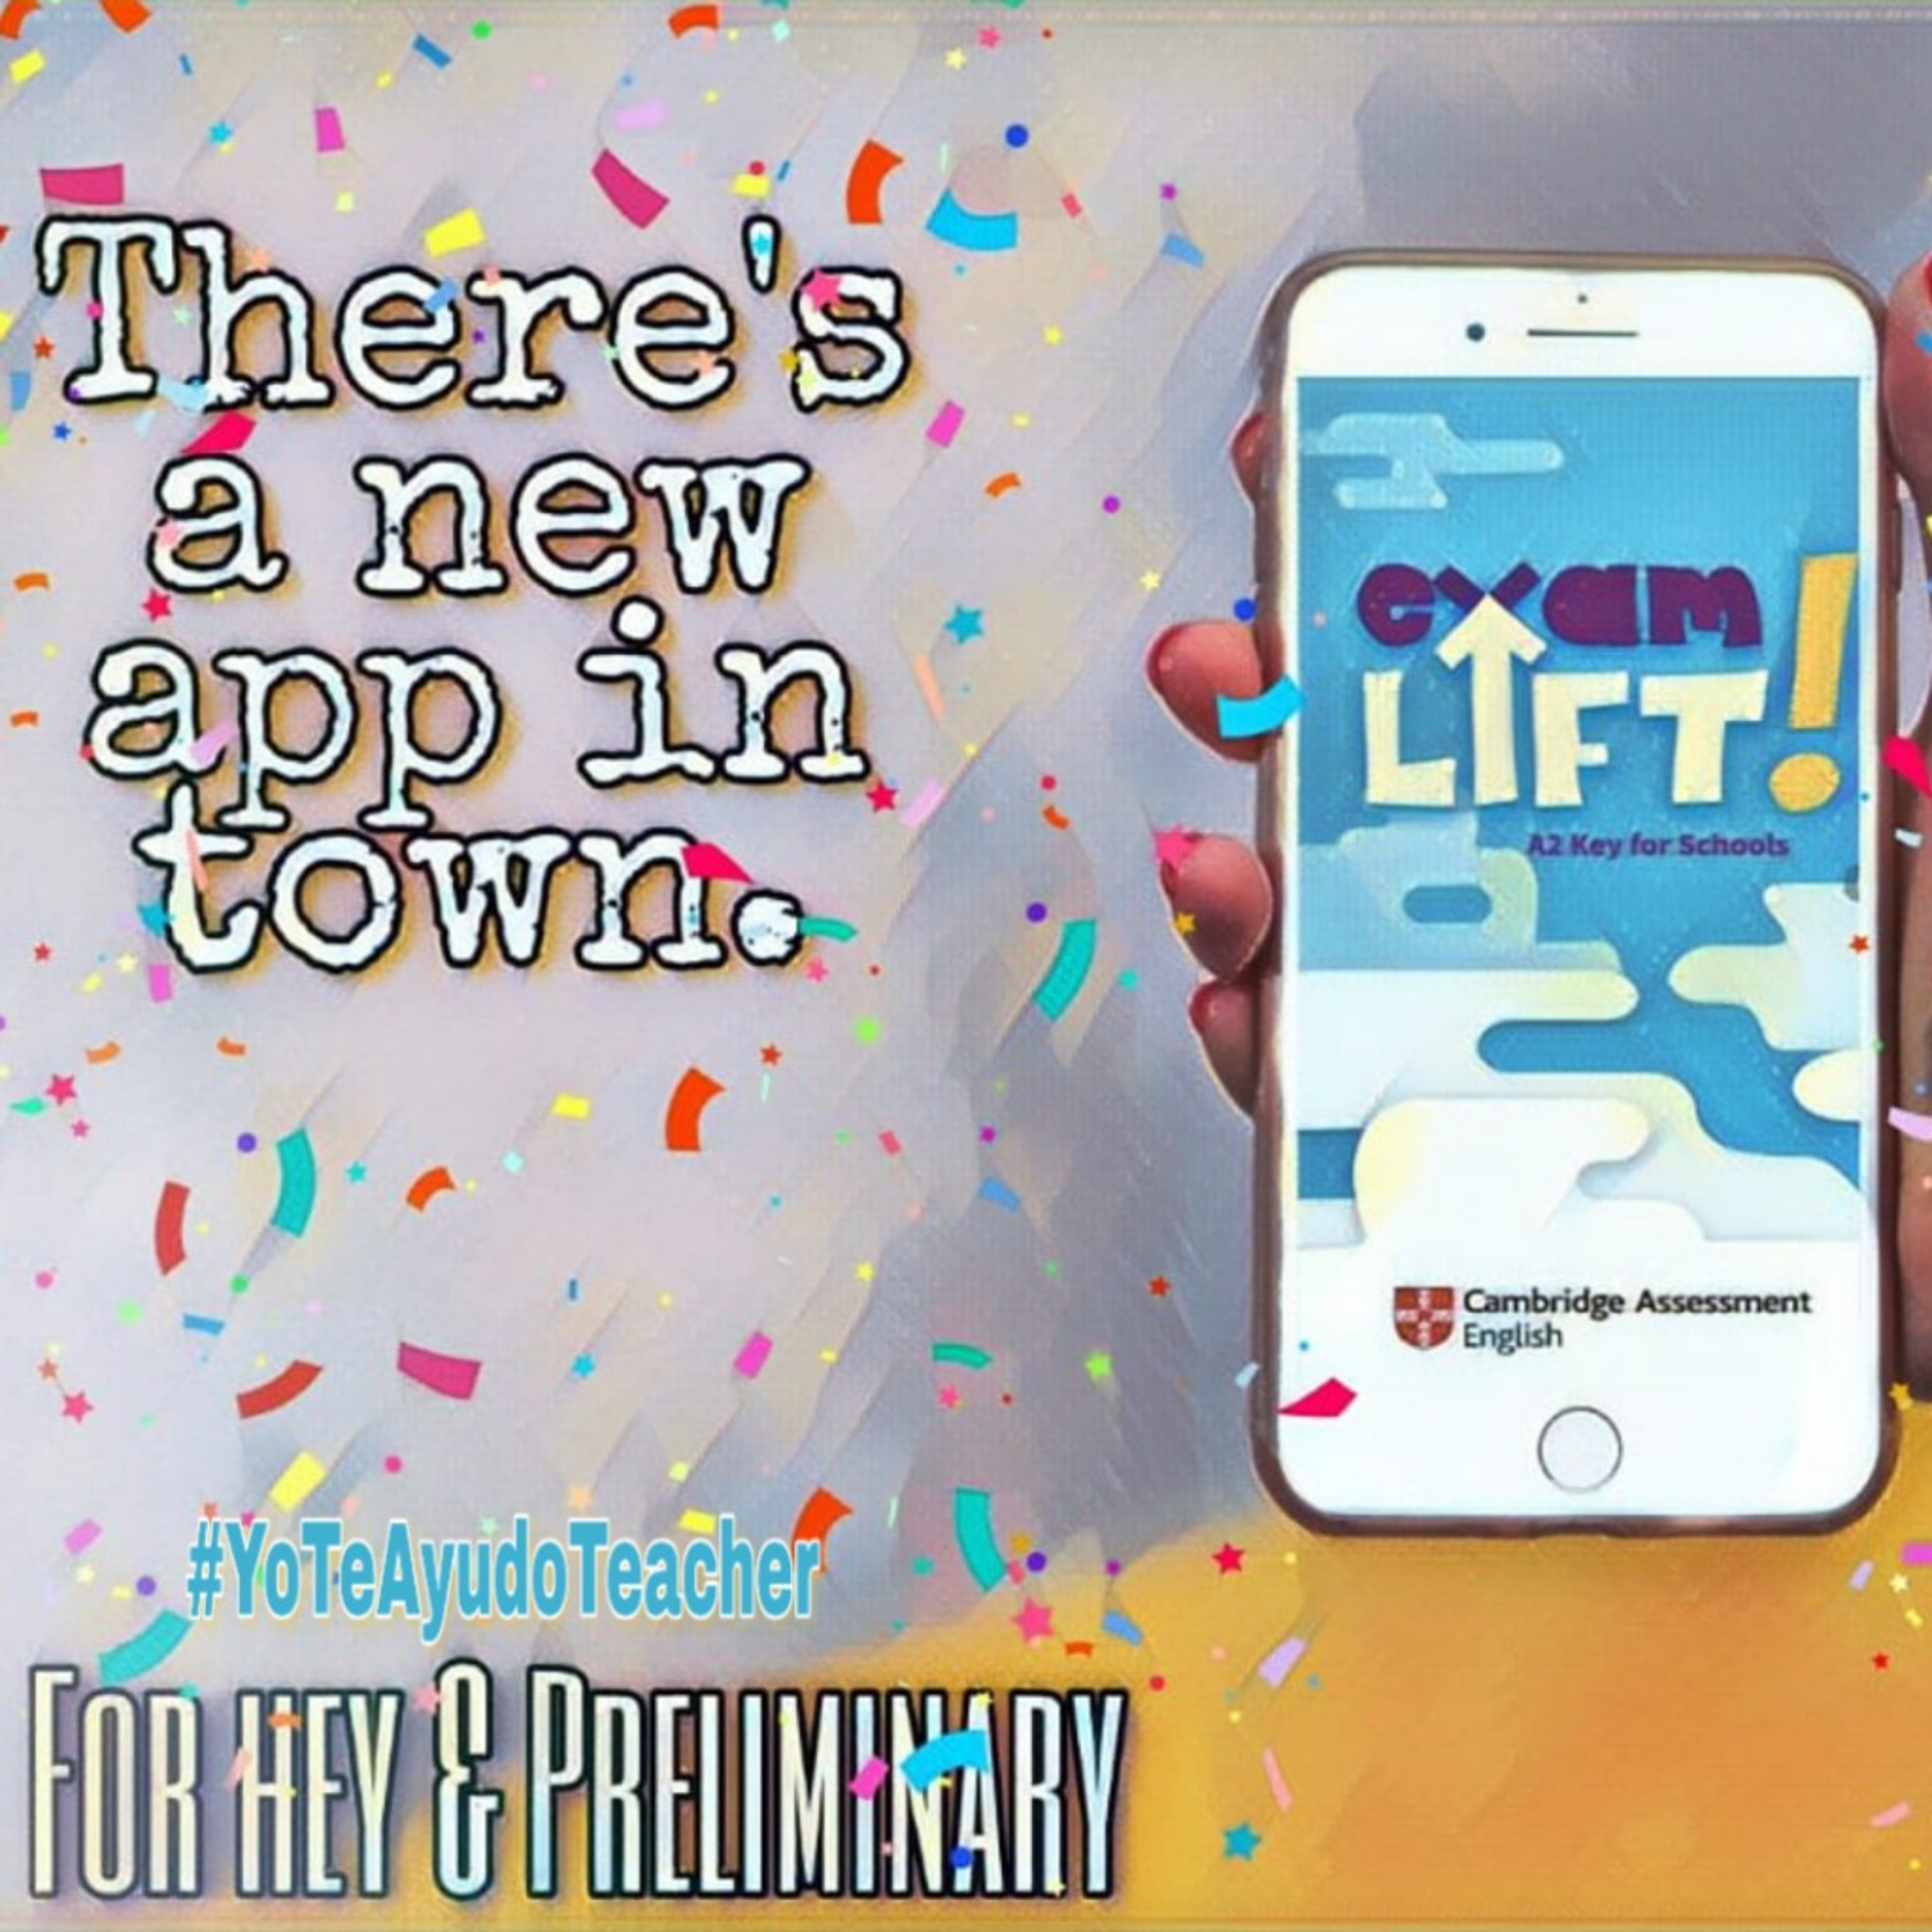 Exam Lift App: Just another great tool by #Cambridge to support your students. #YoTeAyudoTeacher